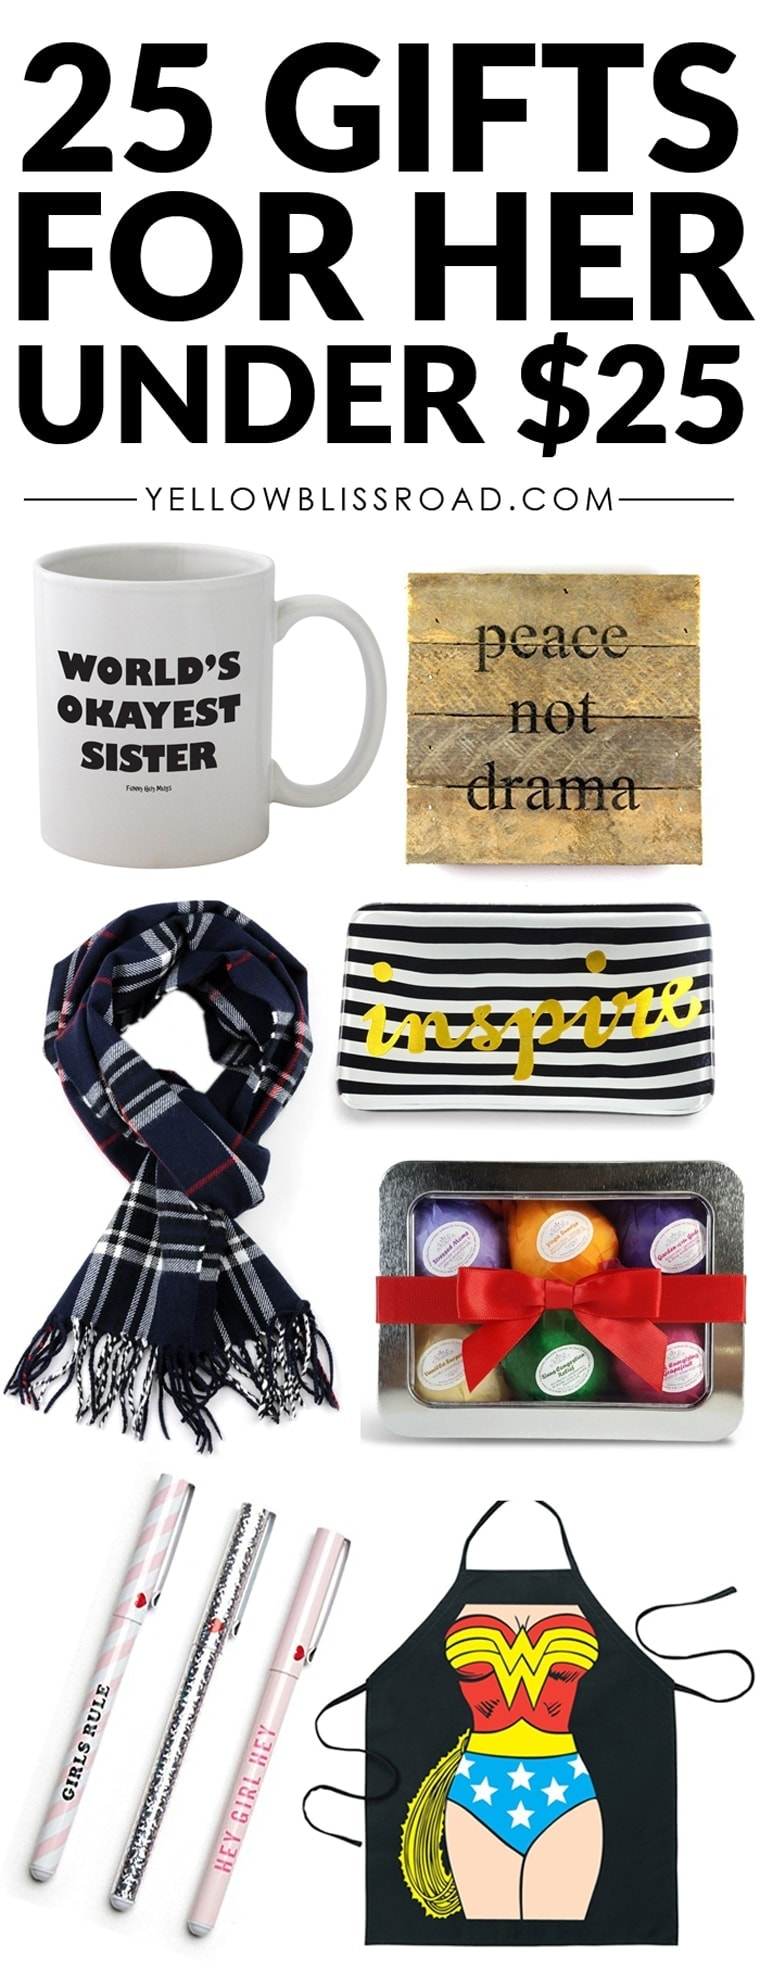 25 best Christmas gifts for moms, aunts, sisters or friends under $25